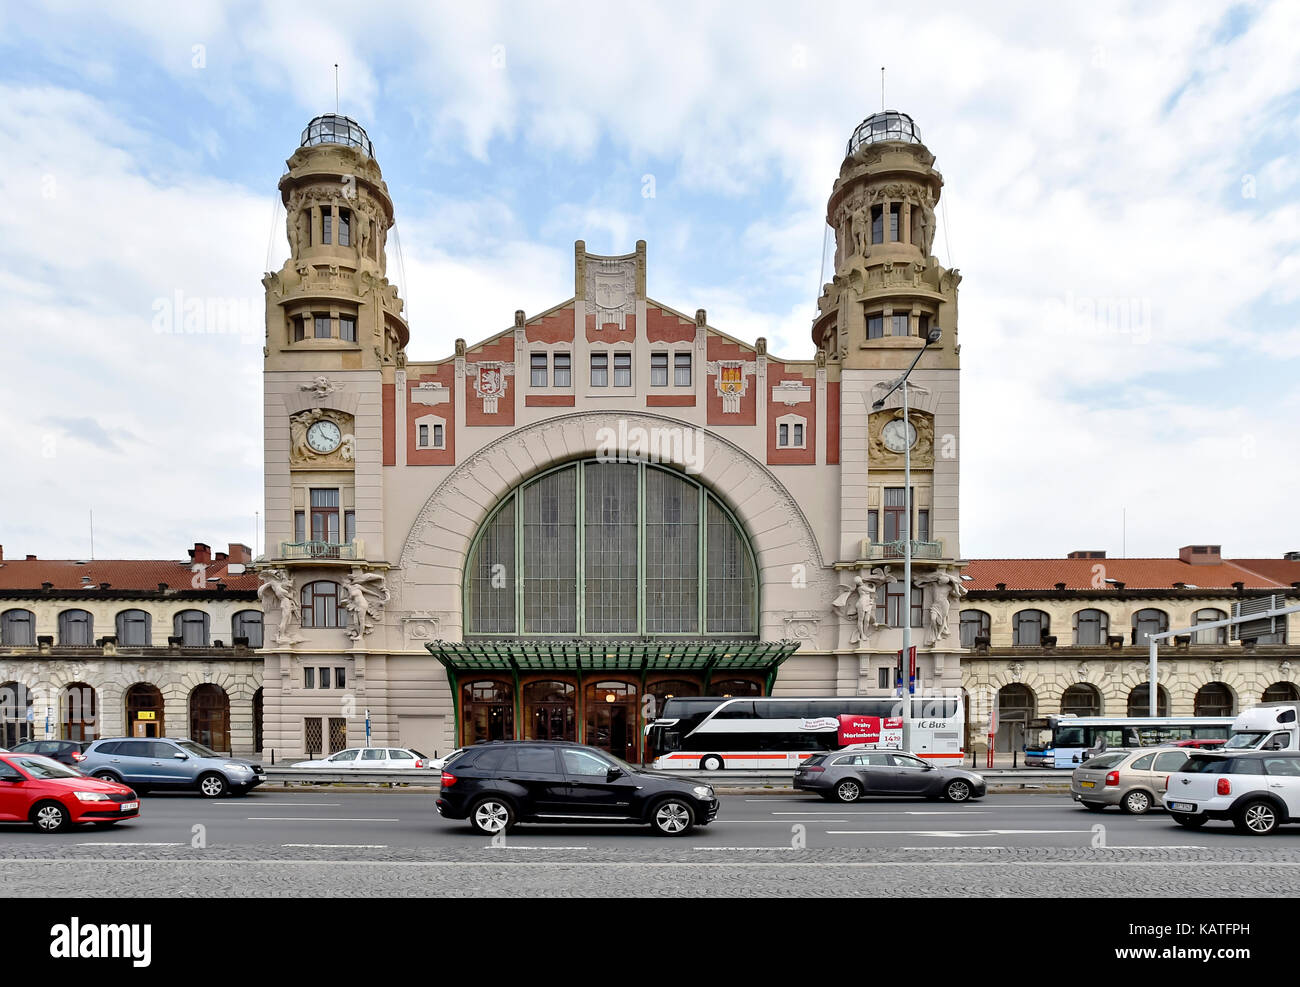 Prague, Czech Republic. 26th Sep, 2017. Prague 2 district court gave the verdict regarding one of complaints filed by Italy's Grandi Stazioni on who is the owner of the Fanta building at Prague main railway station, on September 27. The owner of the building is SZDC (Railway Infrastructure Administration), according the court verdict. On the photo, taken on September 26, is seen the front facade of the Art Nouveau Fanta's building of the railway station by architect Josef Fanta. Credit: Vit Simanek/CTK Photo/Alamy Live News Stock Photo